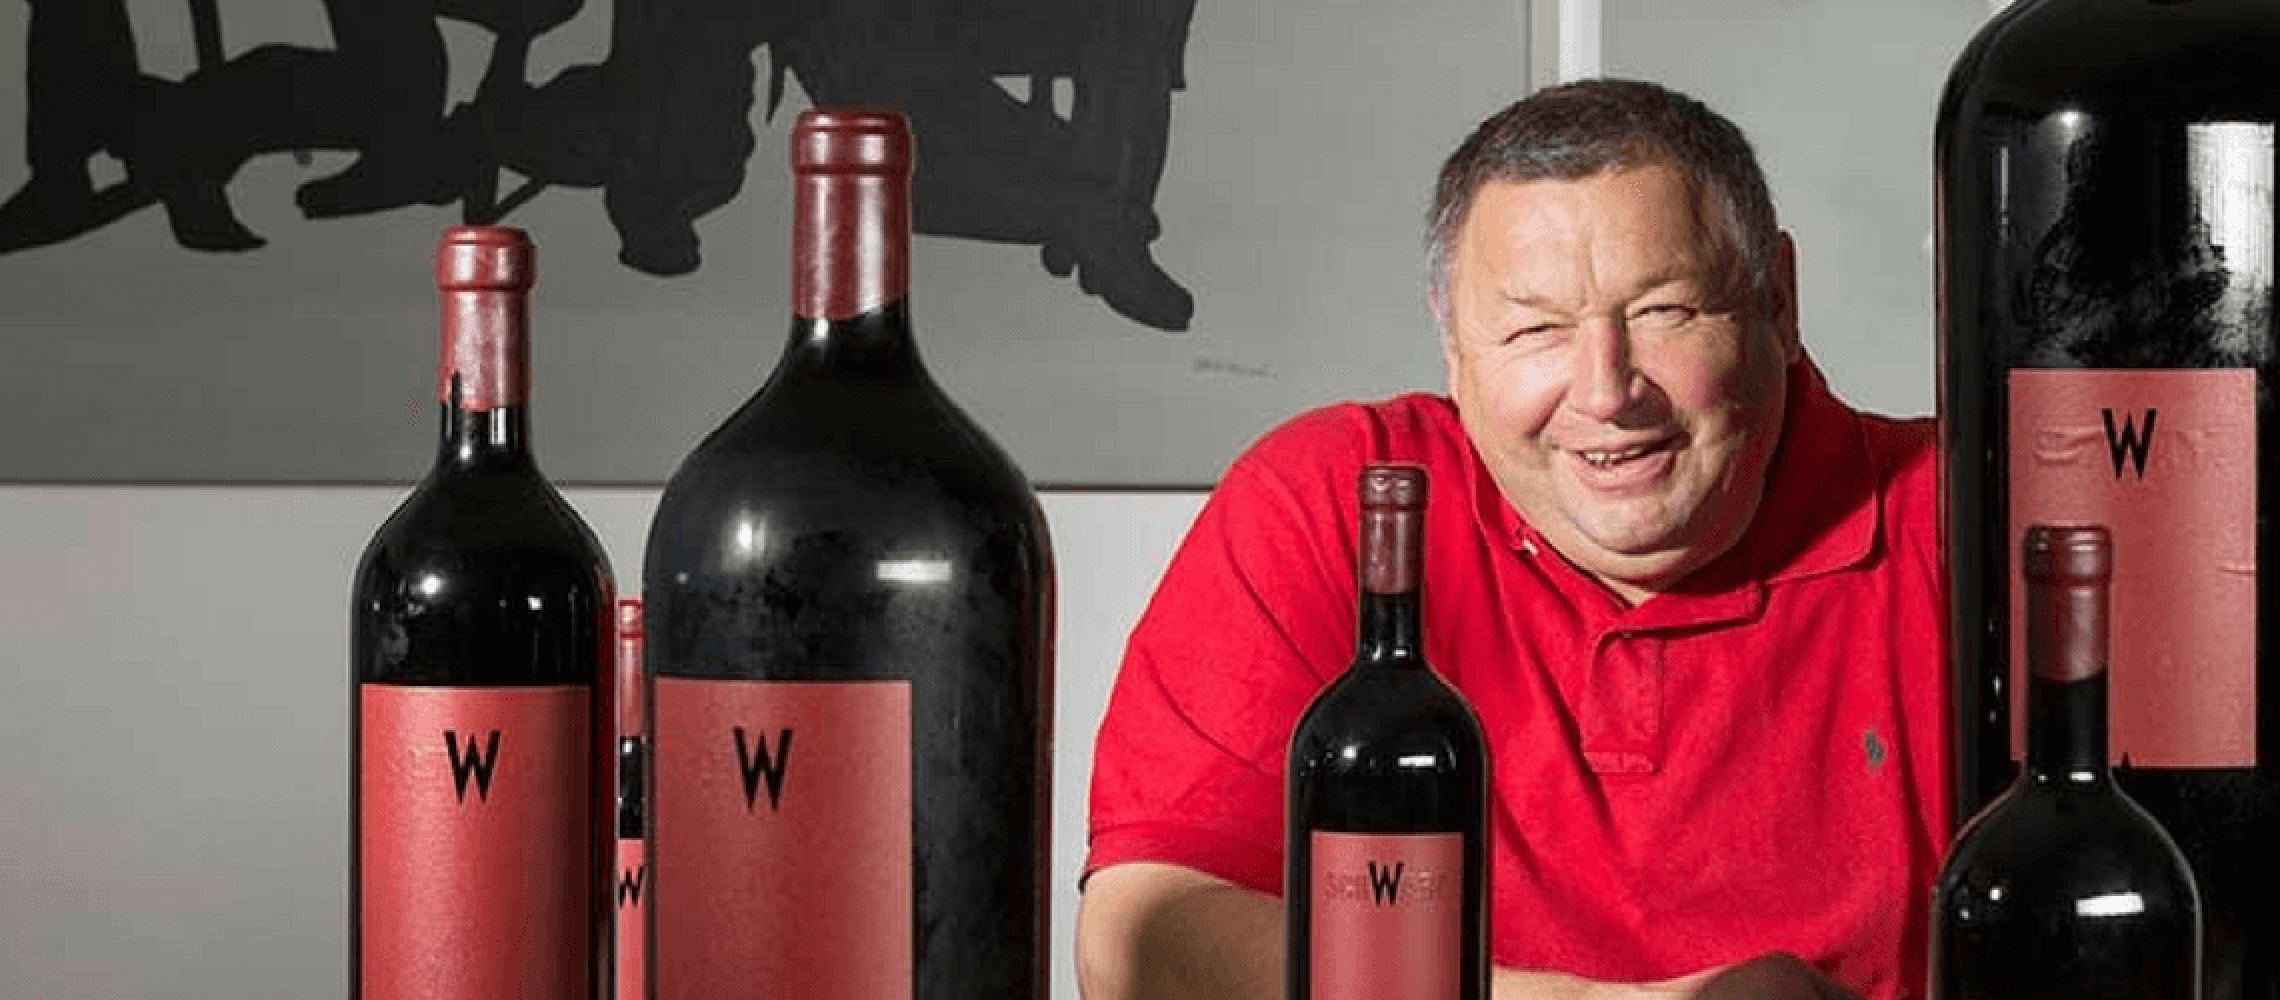 Photo for: Austria's Finest Wine to Compete in London Wine Competition